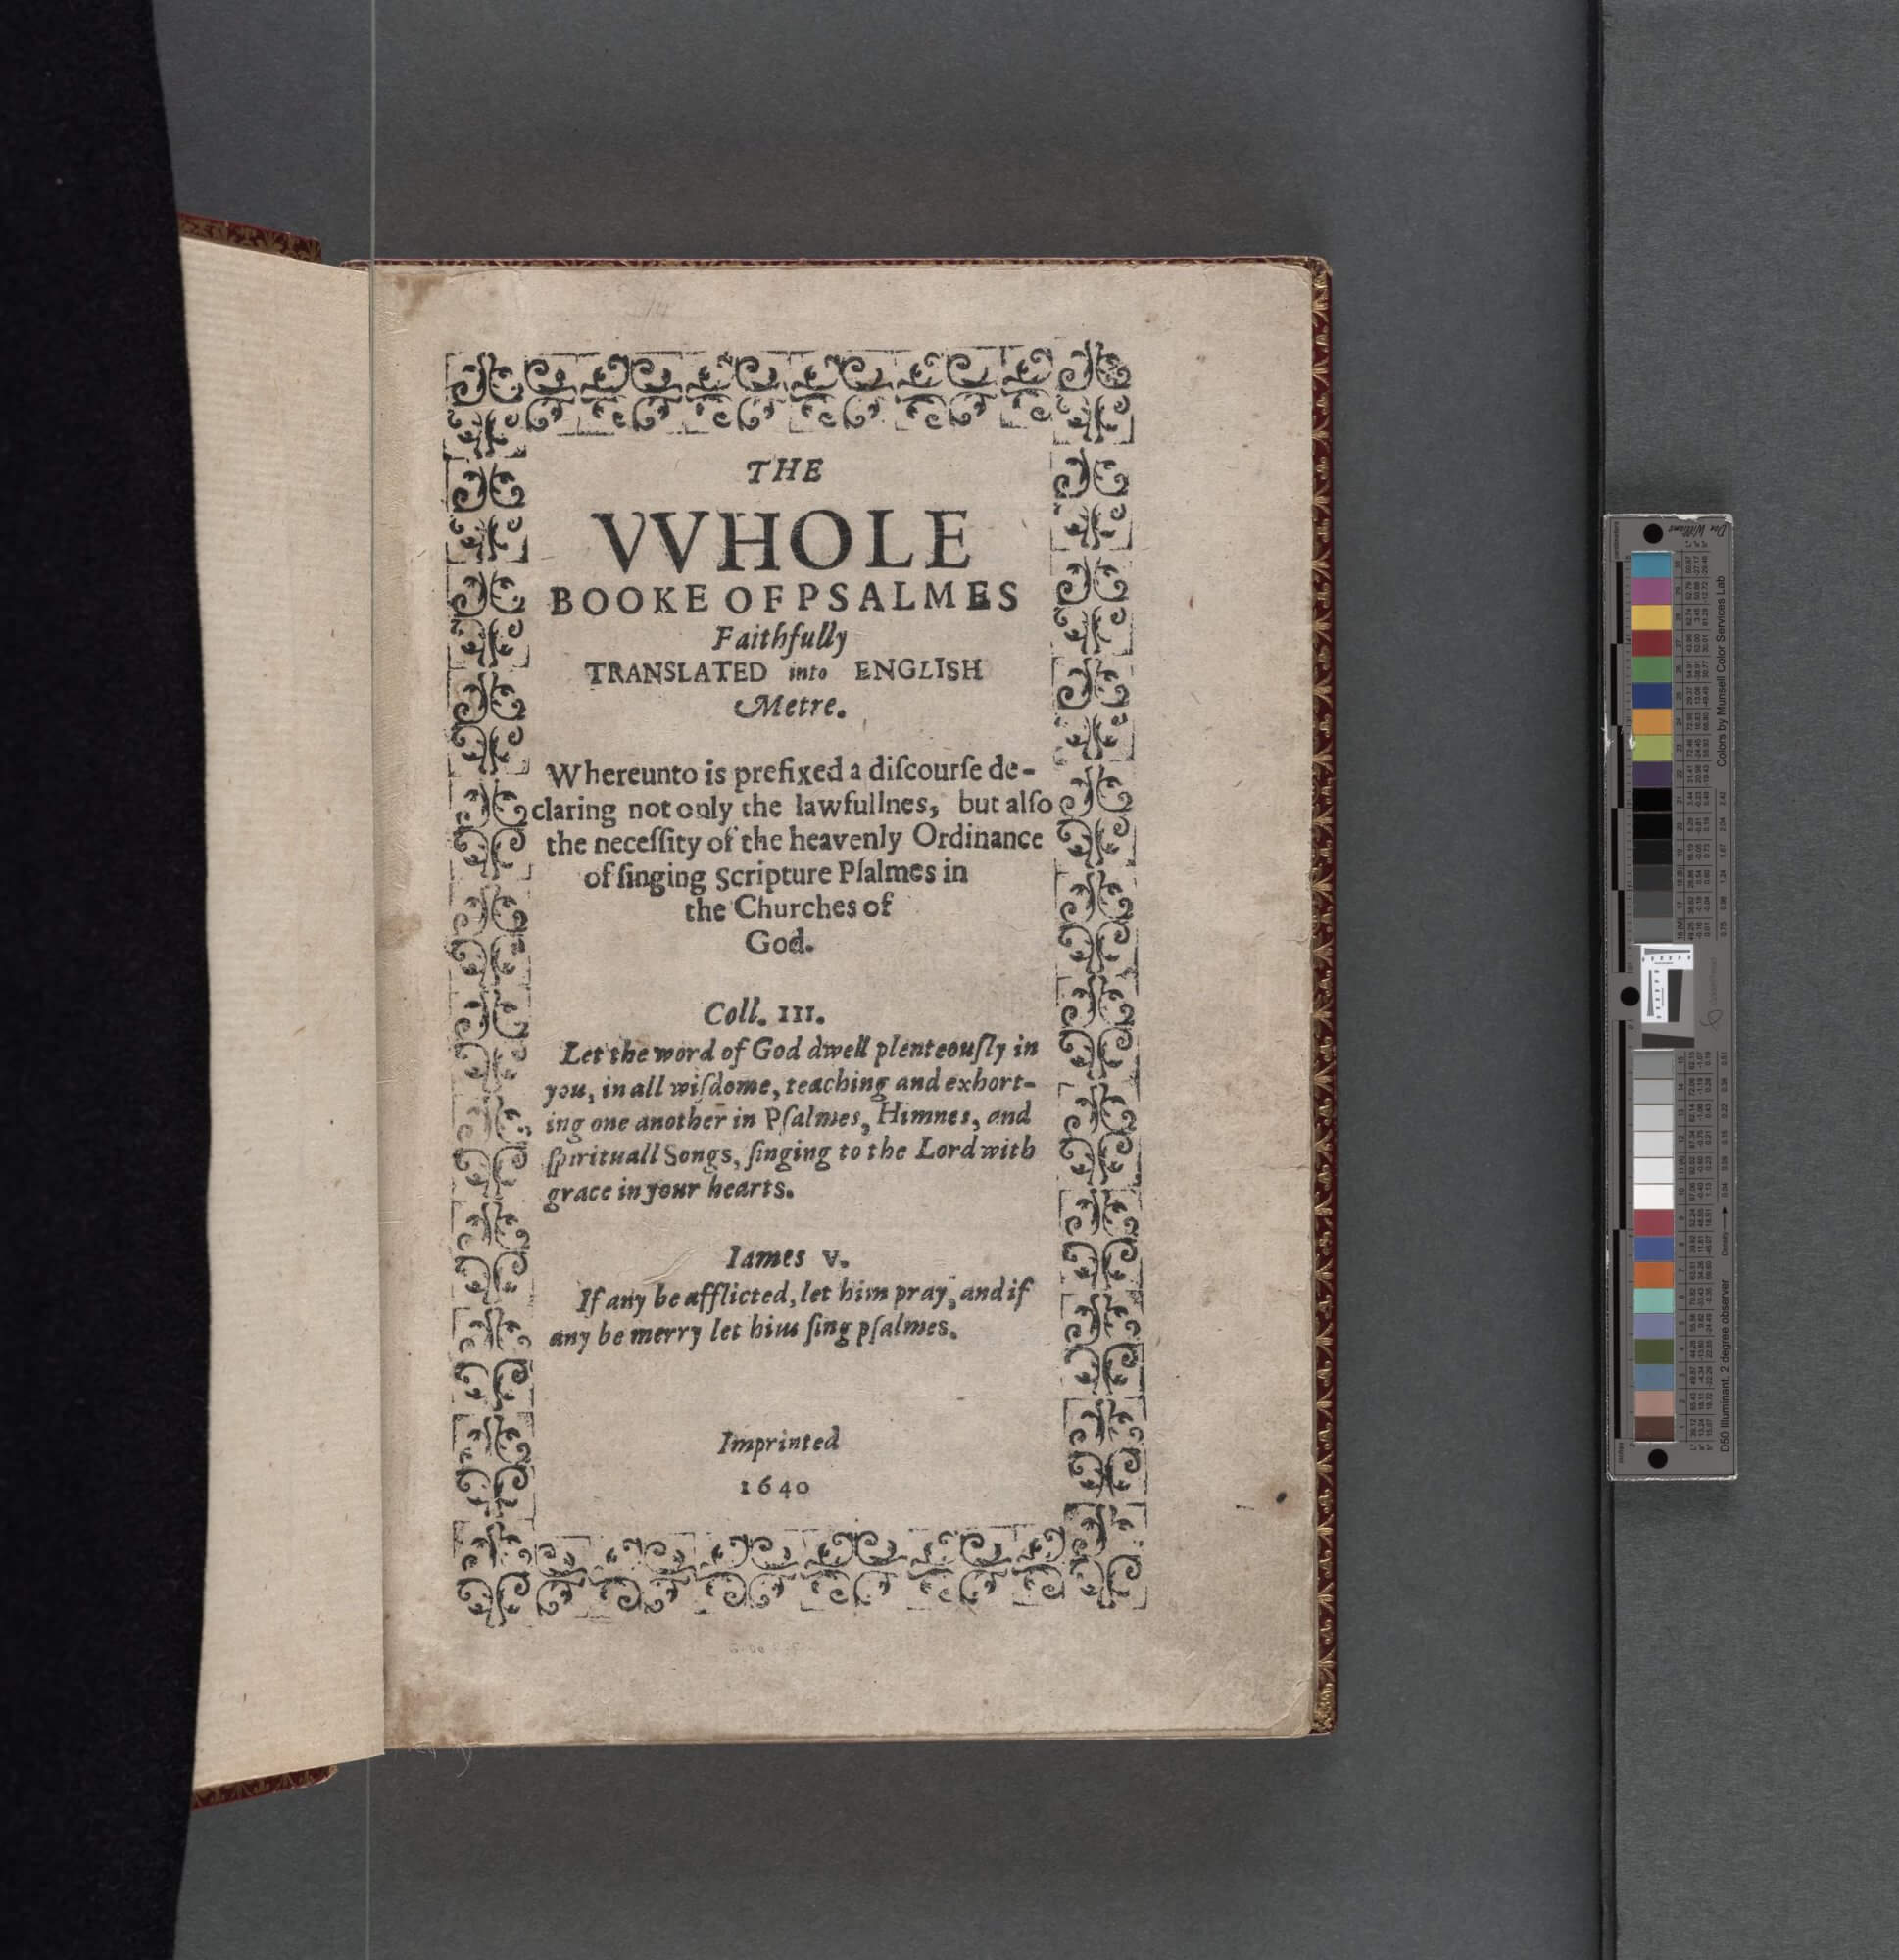 The Bay Psalm Book, as this work is known, is the first book printed in British North America.